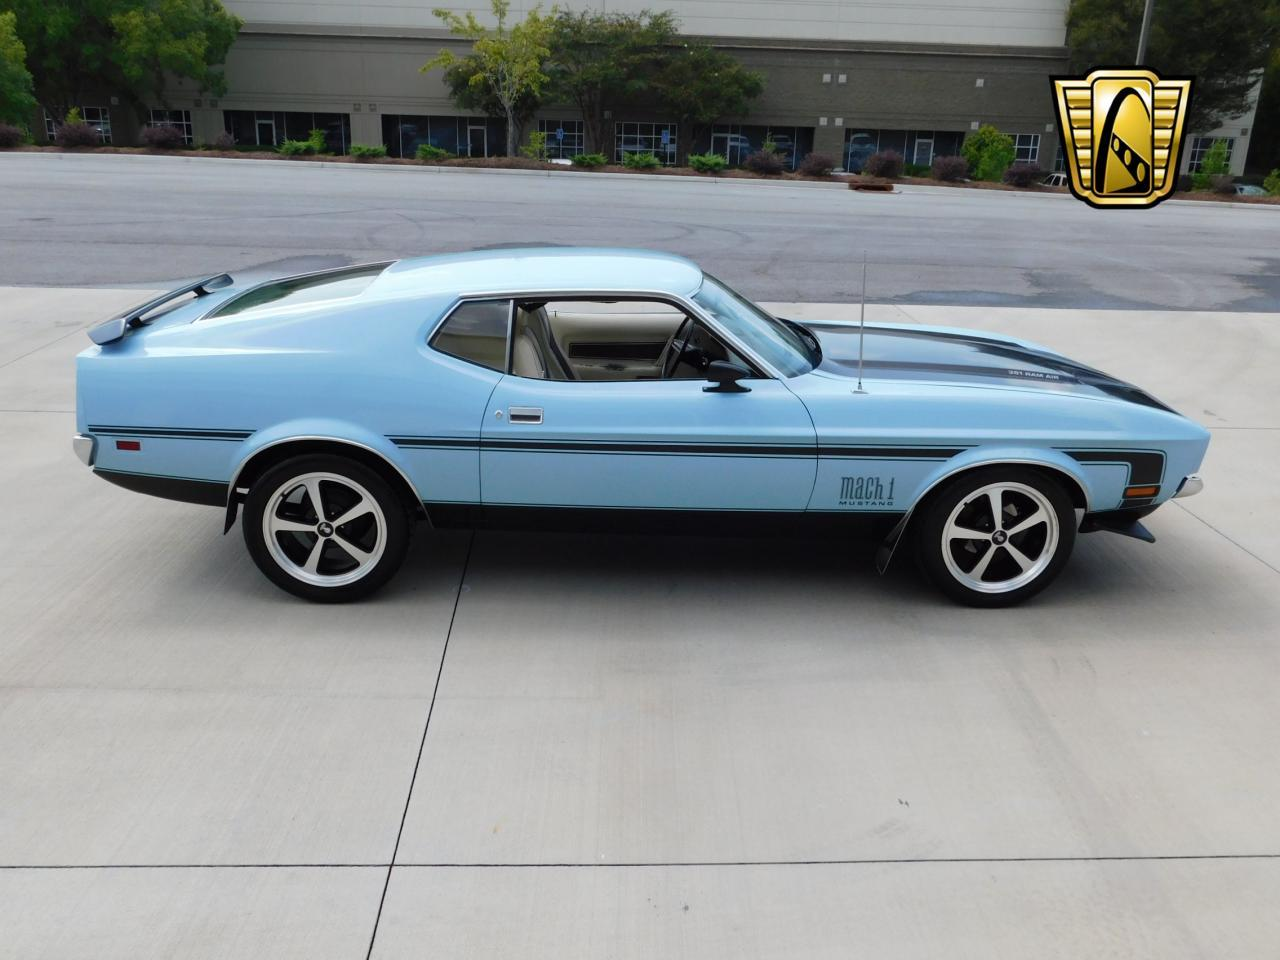 Large Picture of Classic 1971 Mustang located in Alpharetta Georgia - $33,995.00 Offered by Gateway Classic Cars - Atlanta - LTQ6